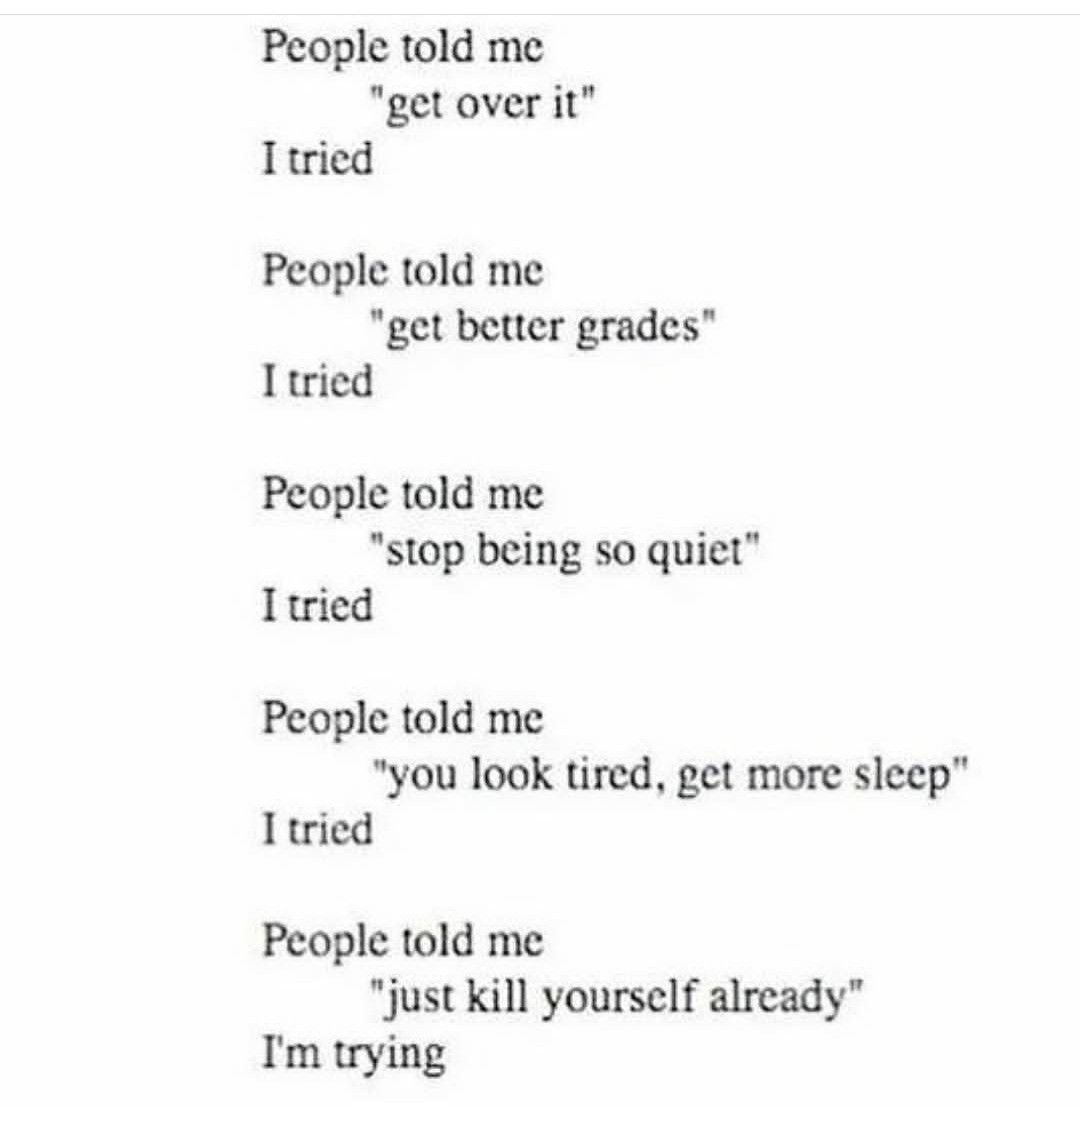 Killing Yourself Quotes Pinlili M On Quotes  Pinterest  Qoutes Thoughts And Mental